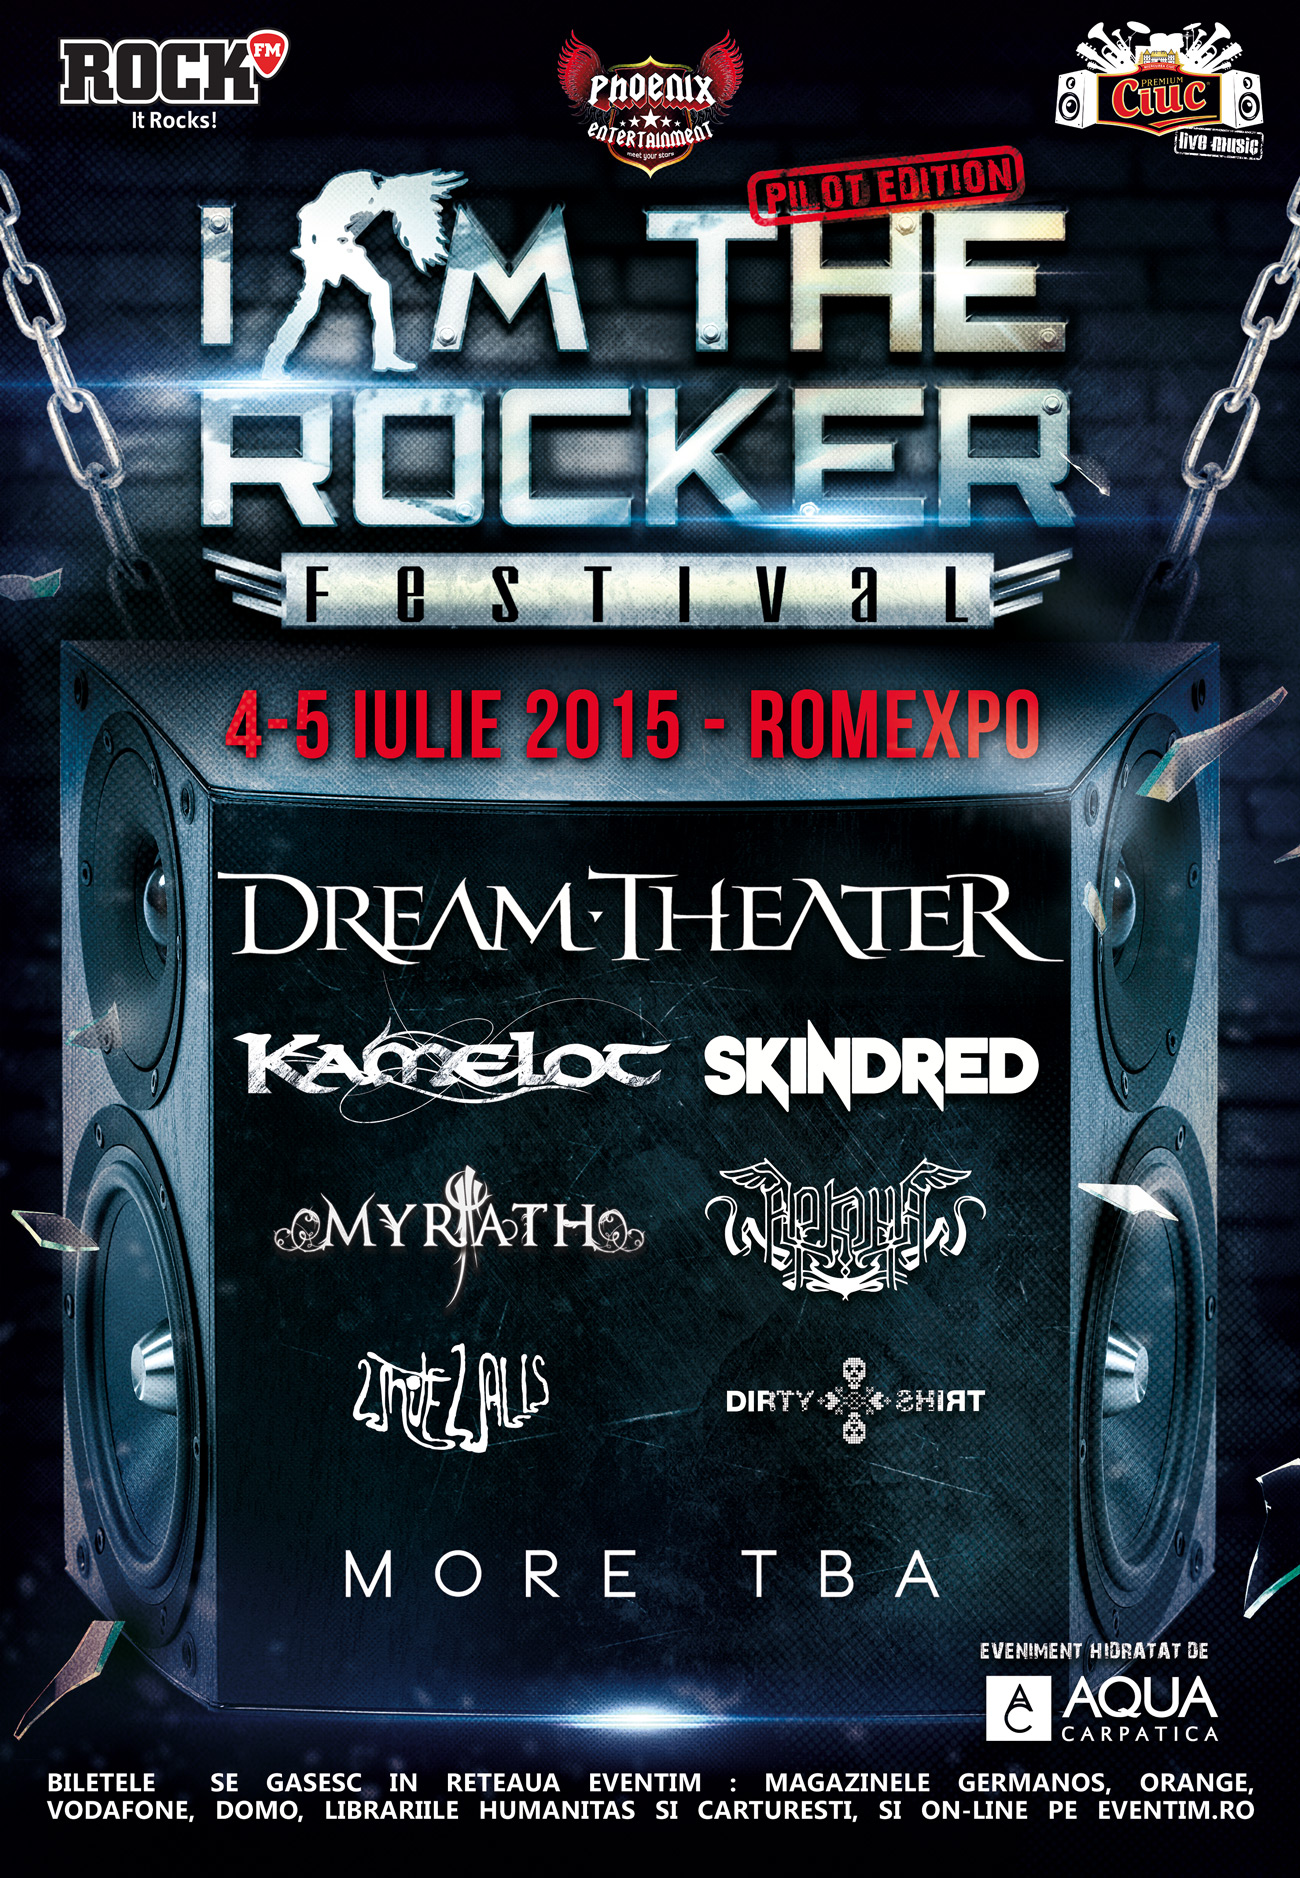 Festivalul de rock, I'am the Rocker la Romexpo